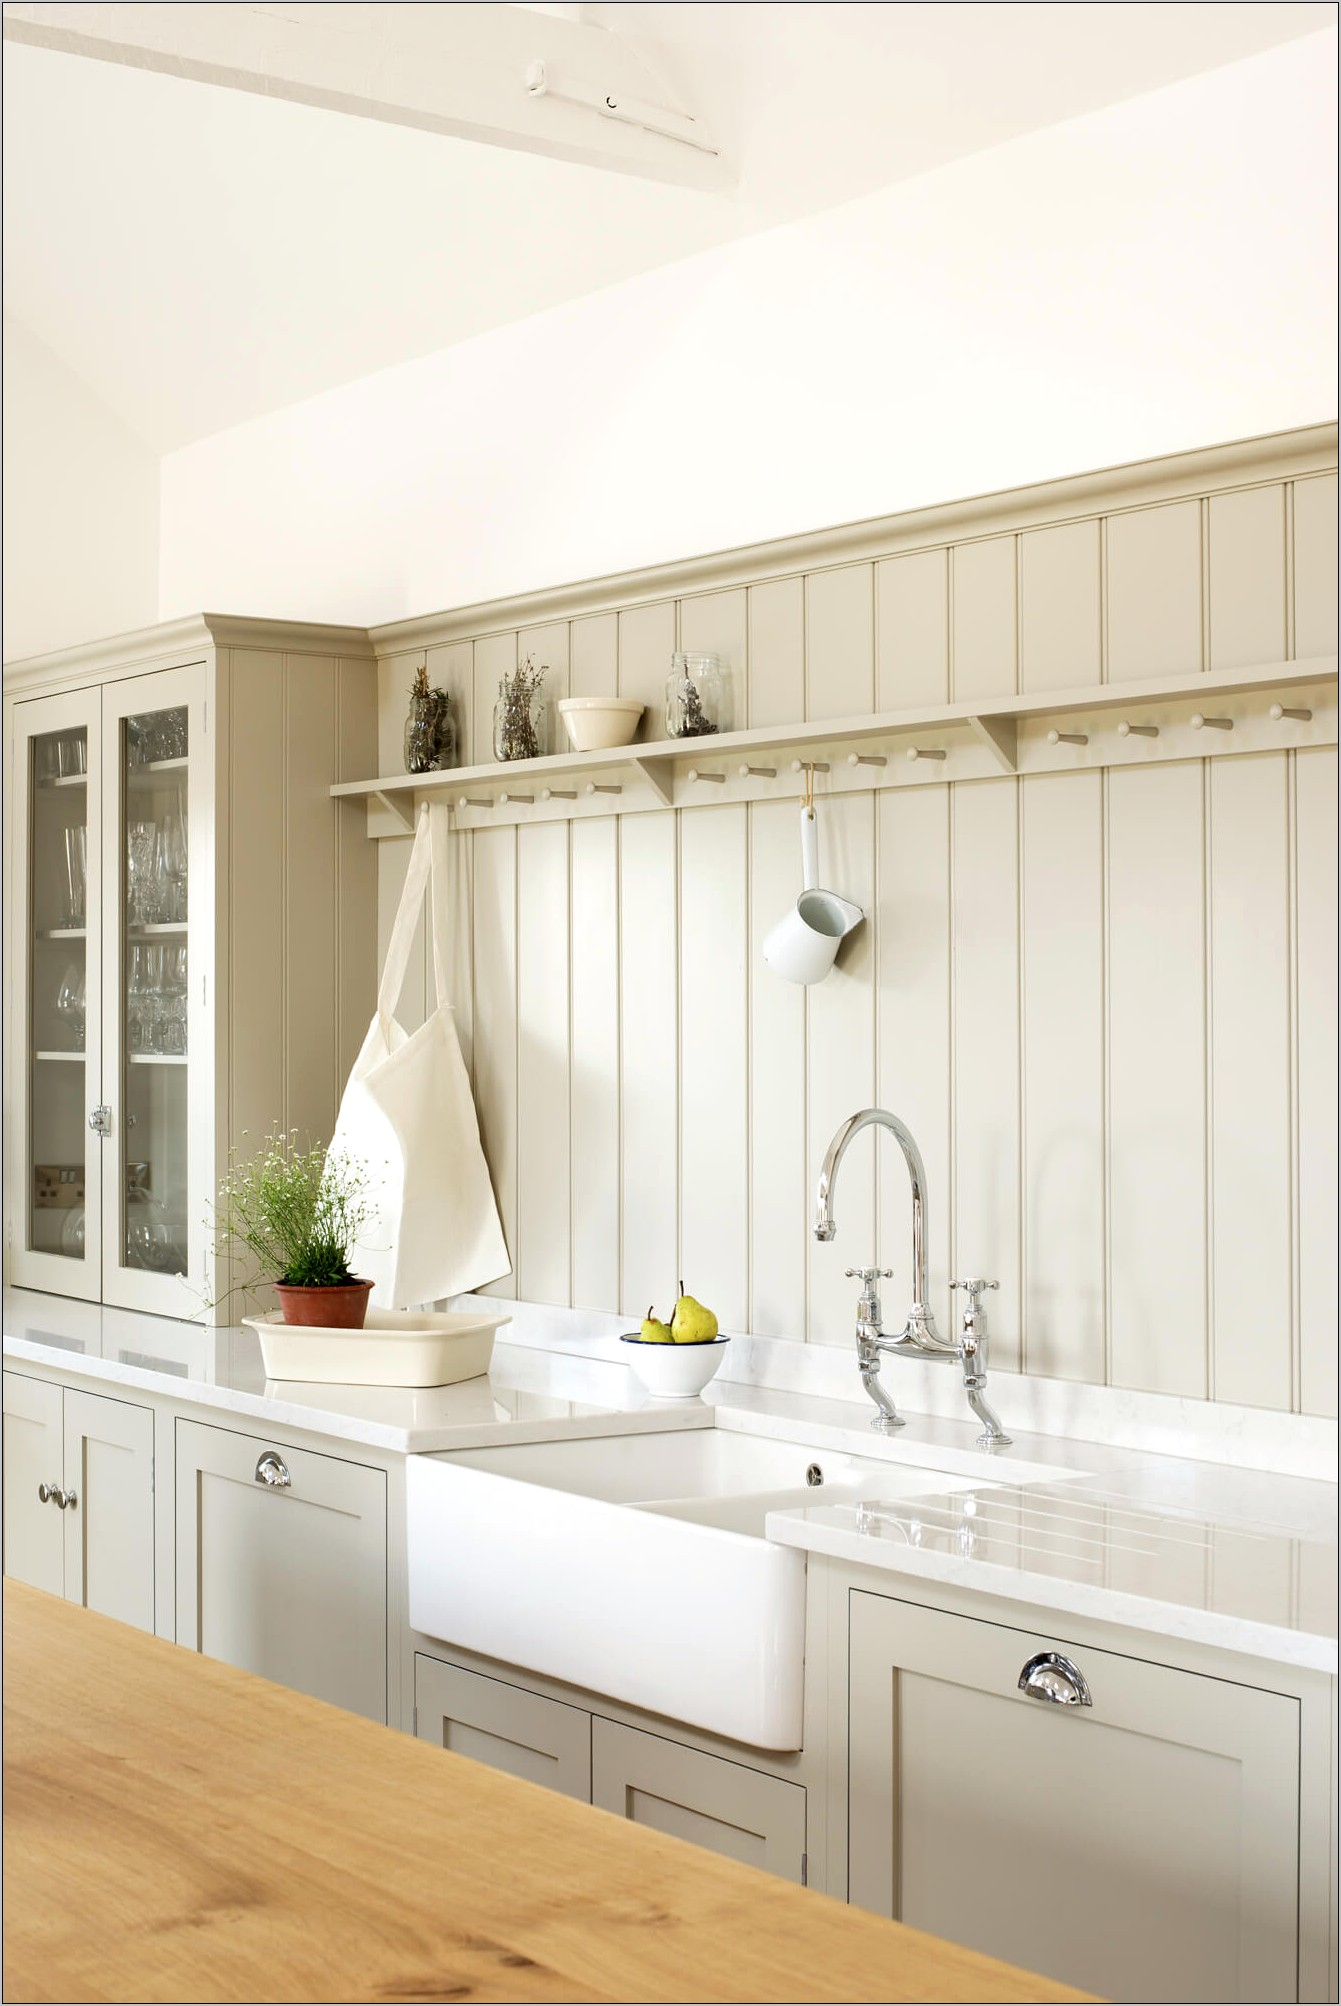 Beadboard Decorative Squares For Wall Kitchen